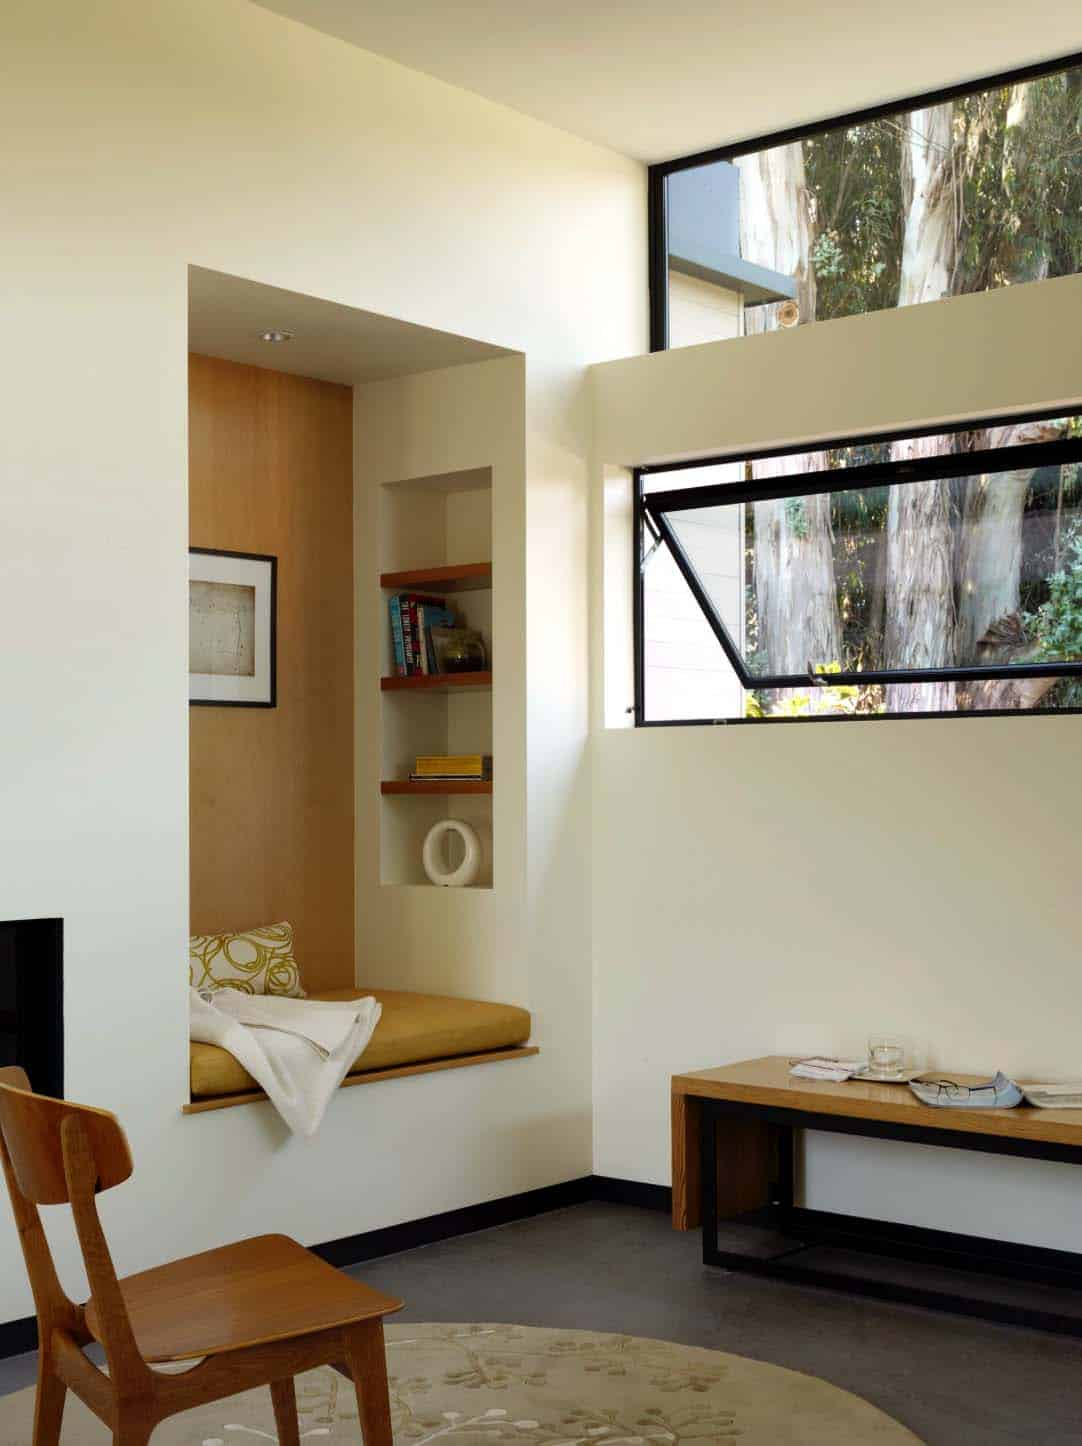 Cozy Reading Nooks For Lounging-11-1 Kindesign